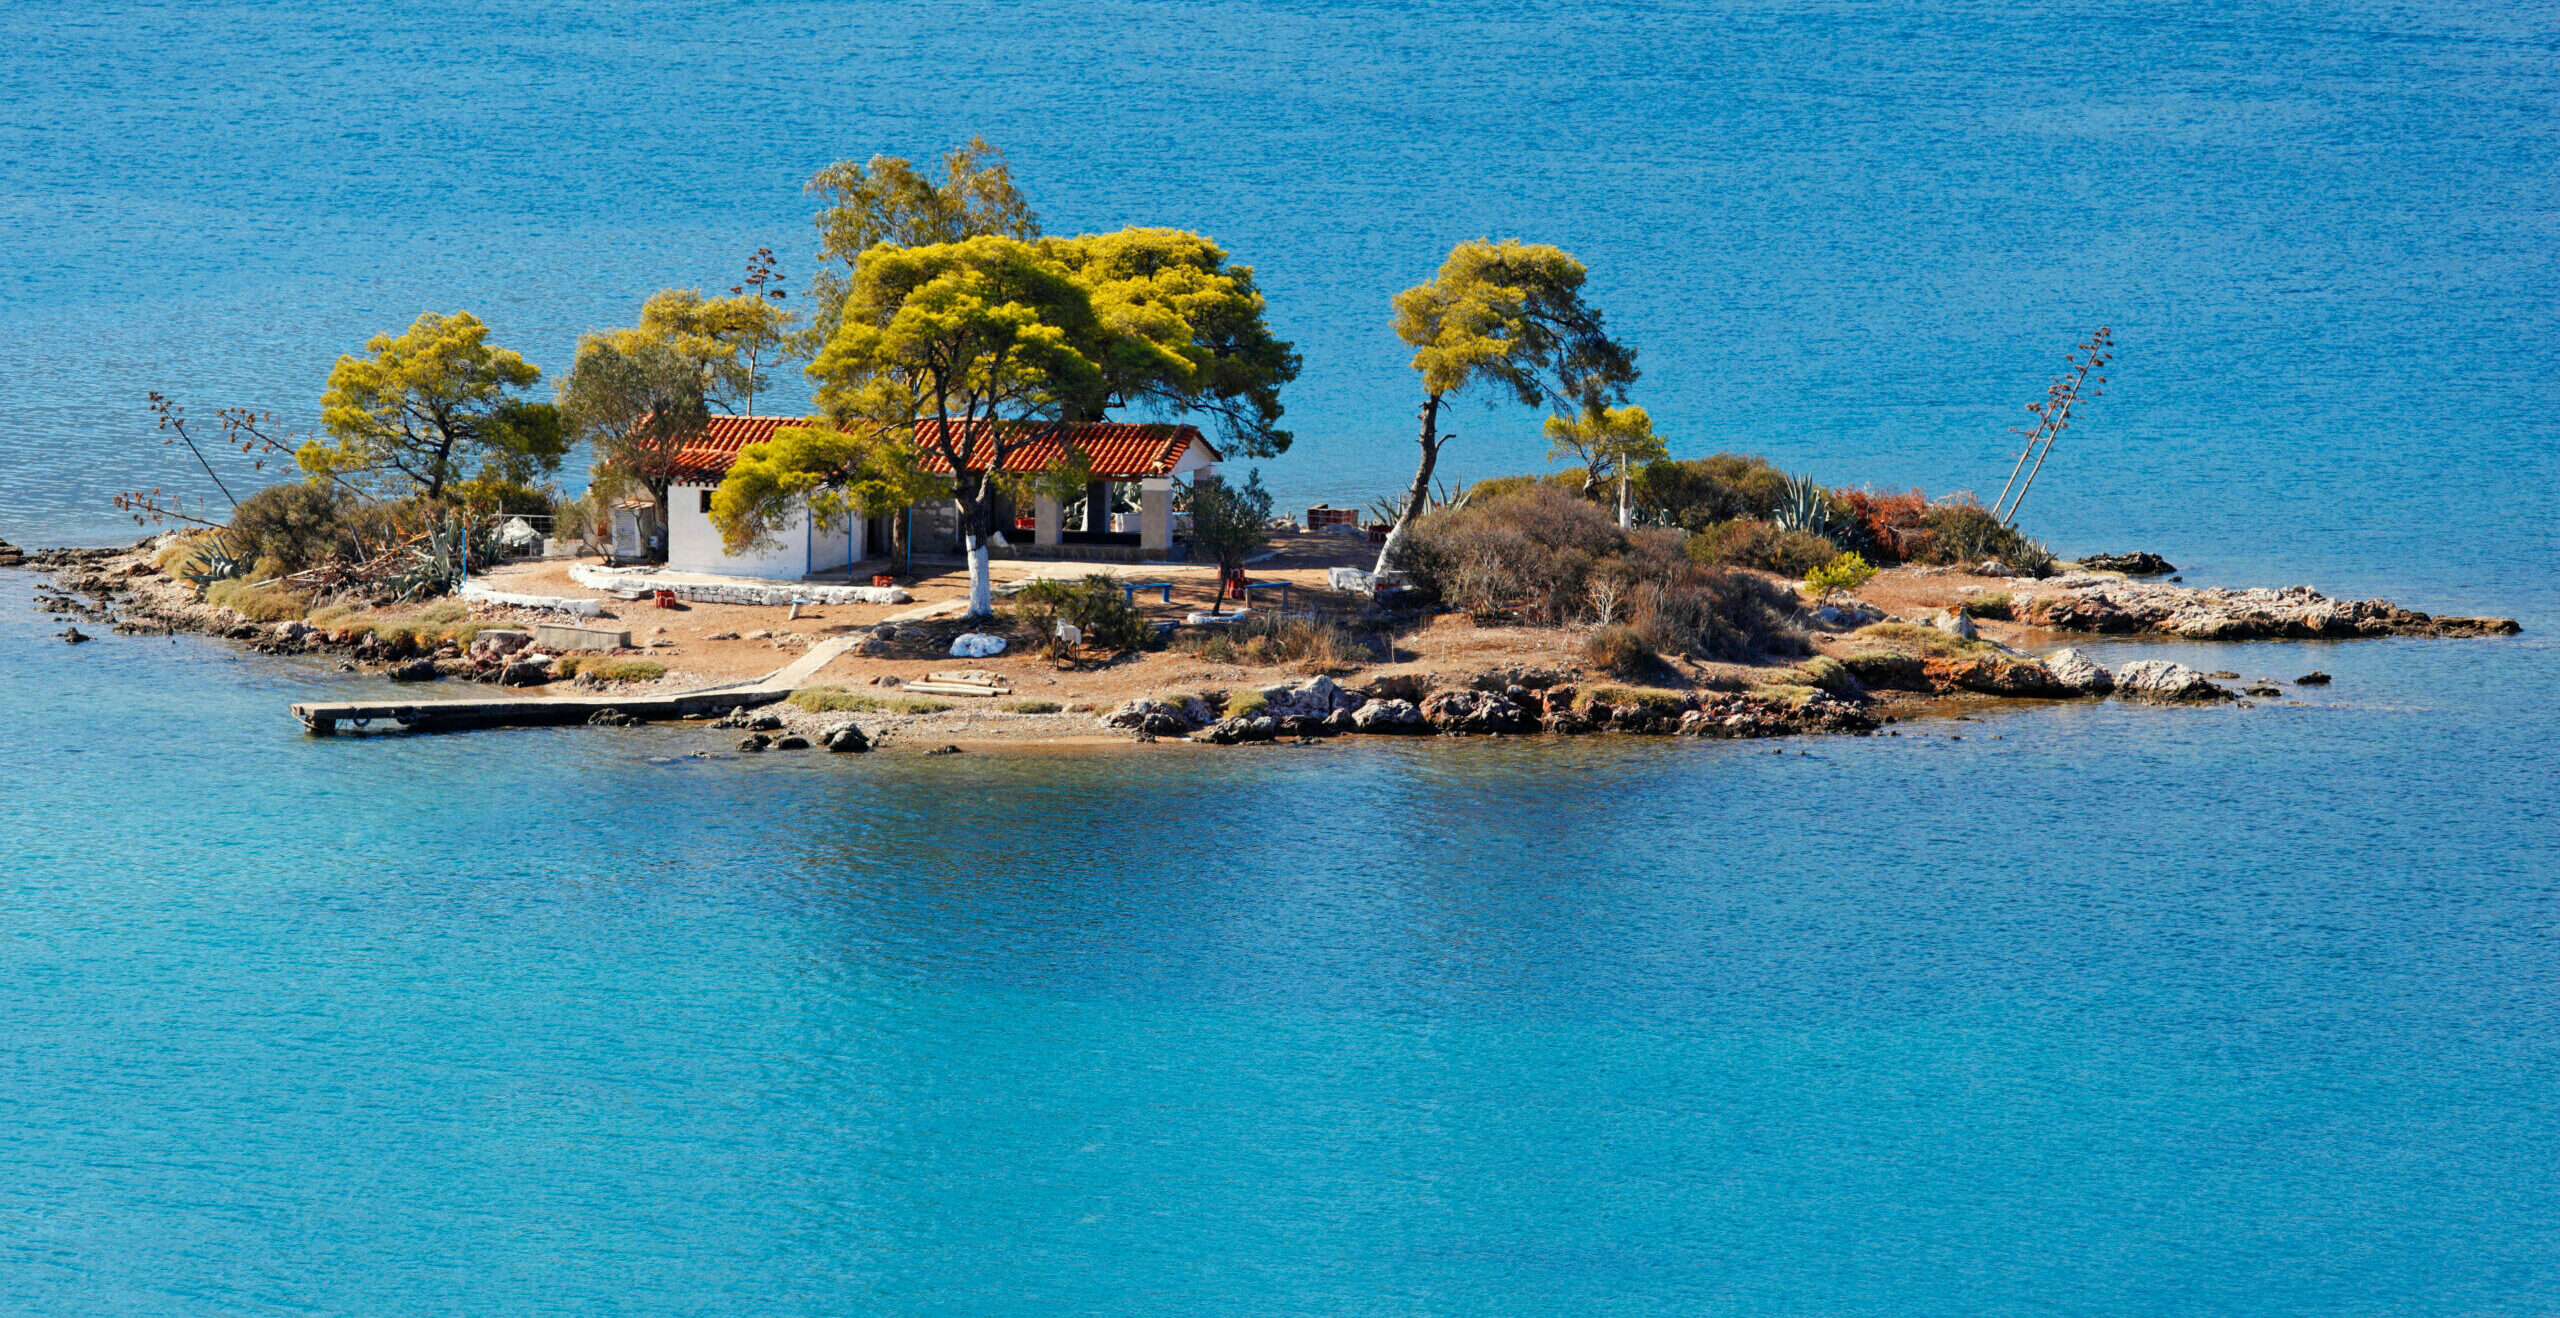 Daskalio: The famous island of love